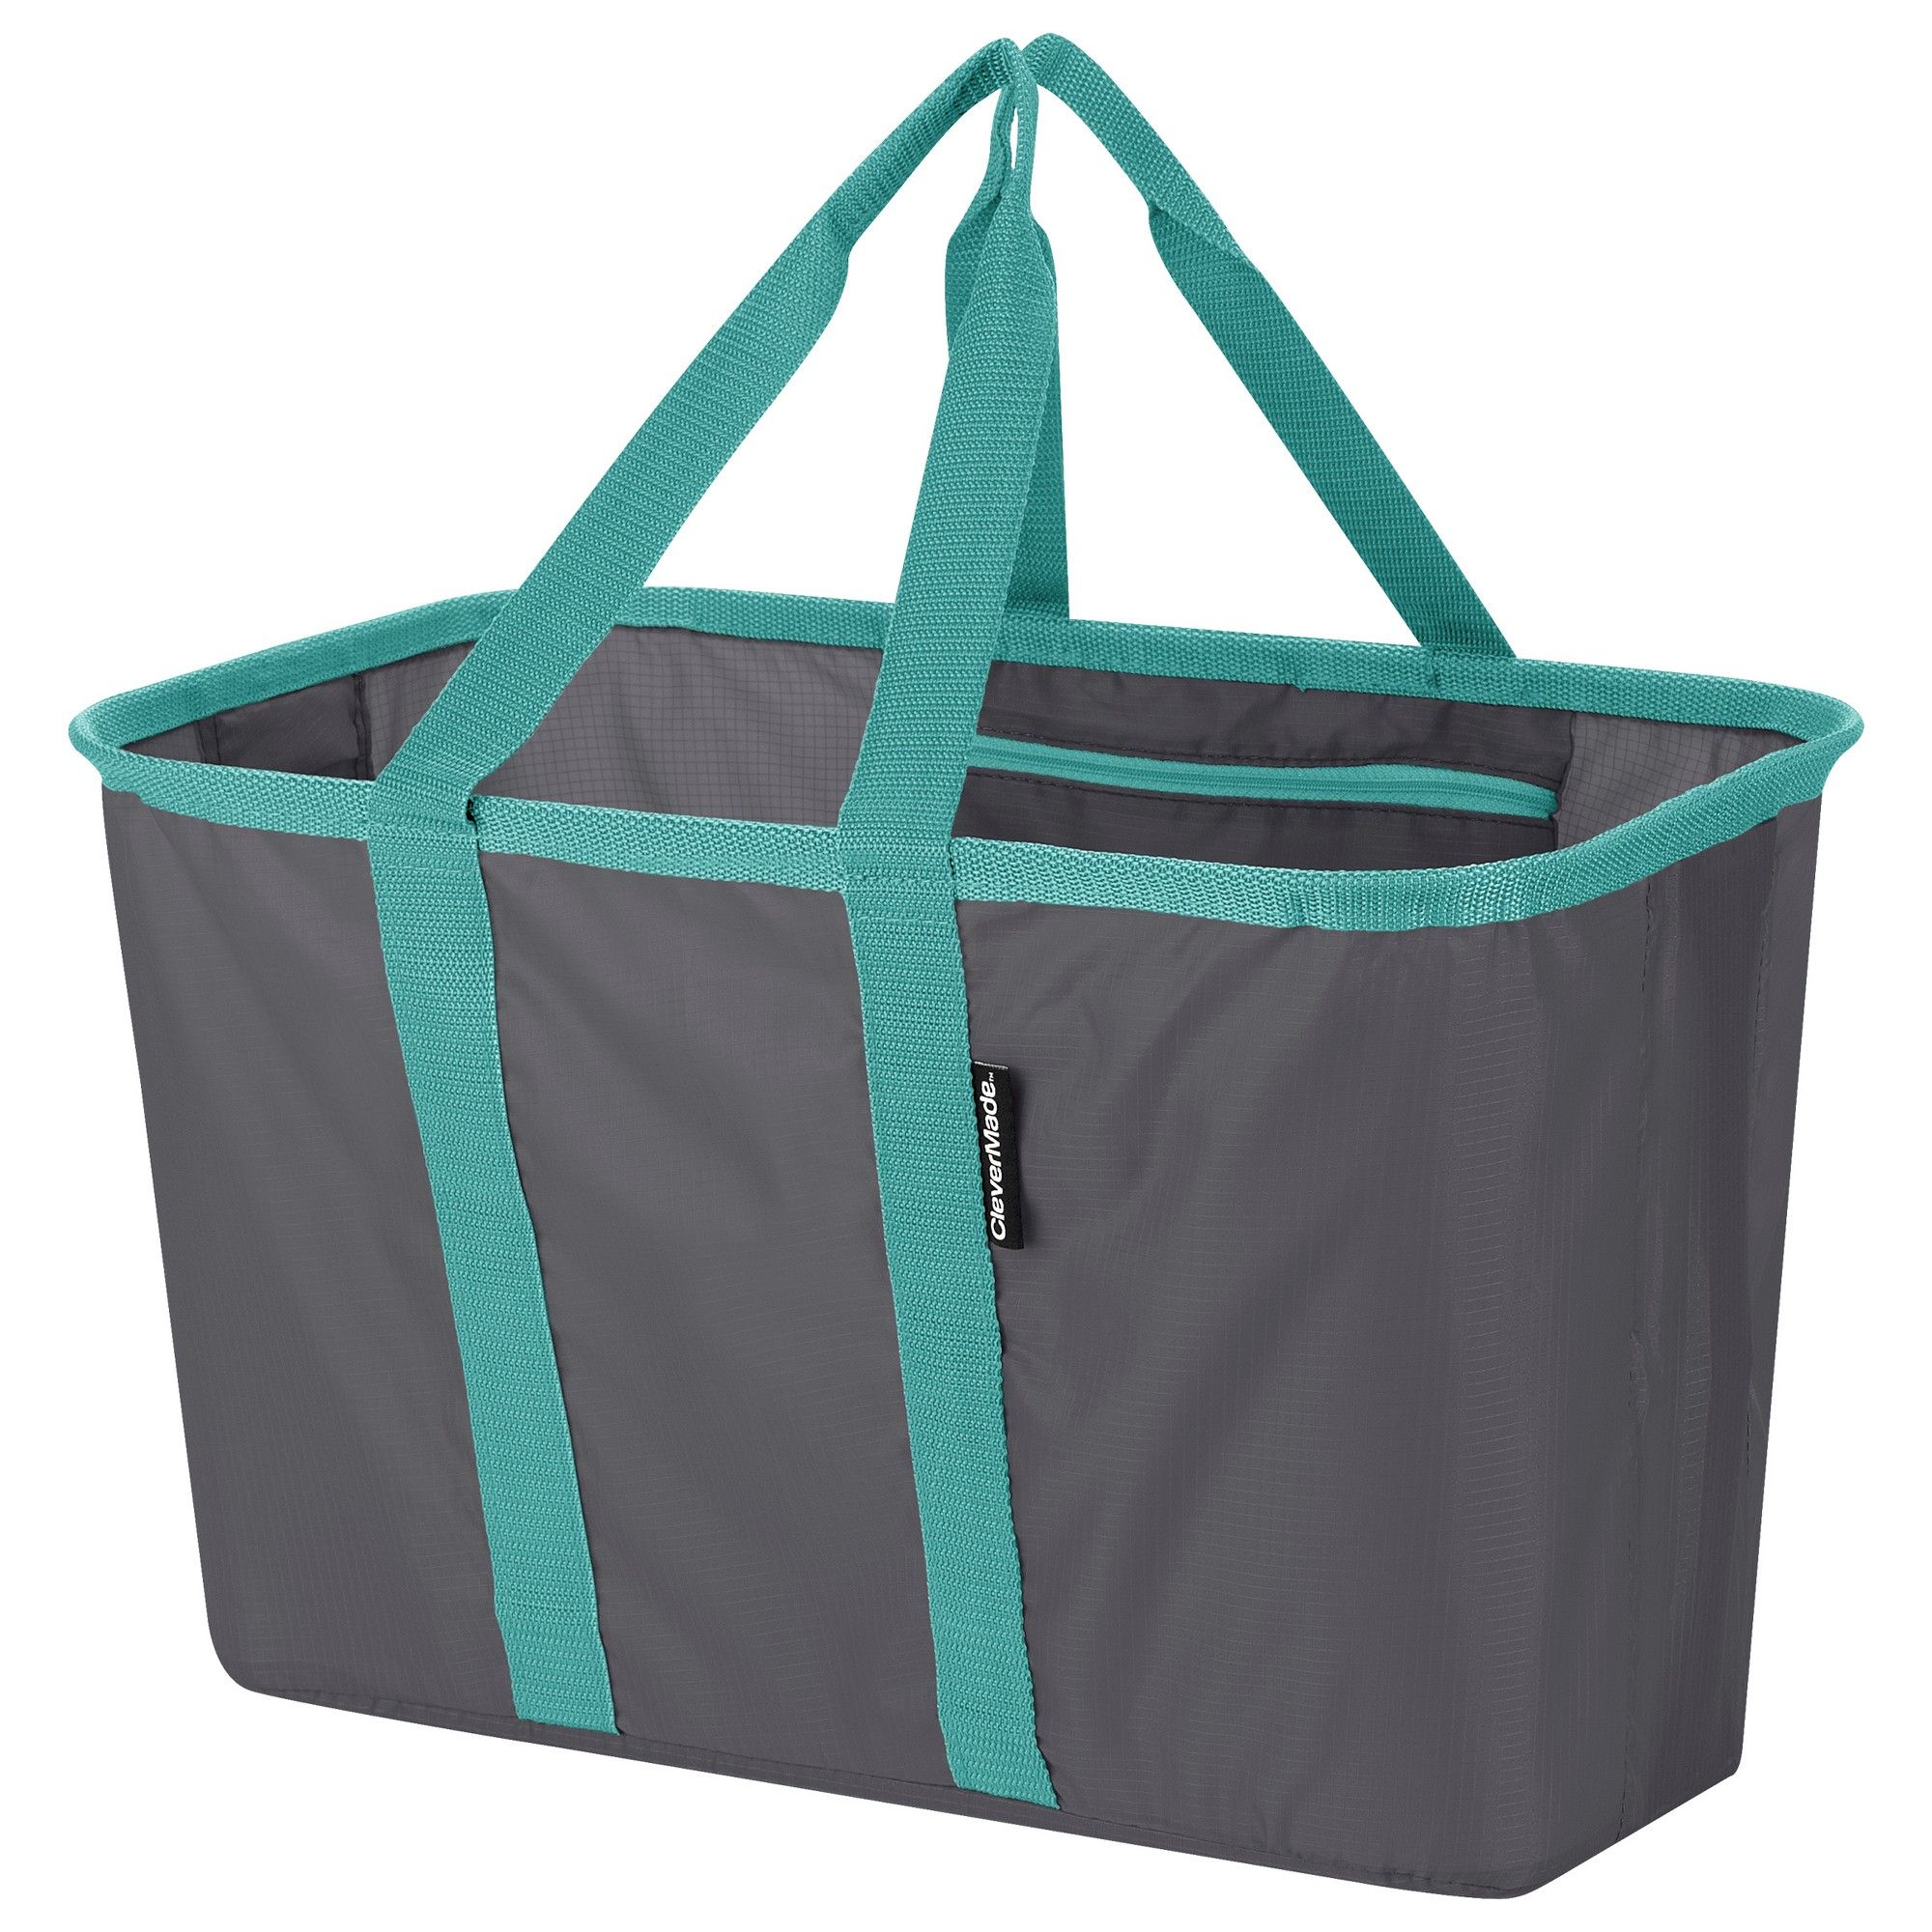 Clevermade Snapbasket 30l Collapsible Tote Charcoal Teal Gray